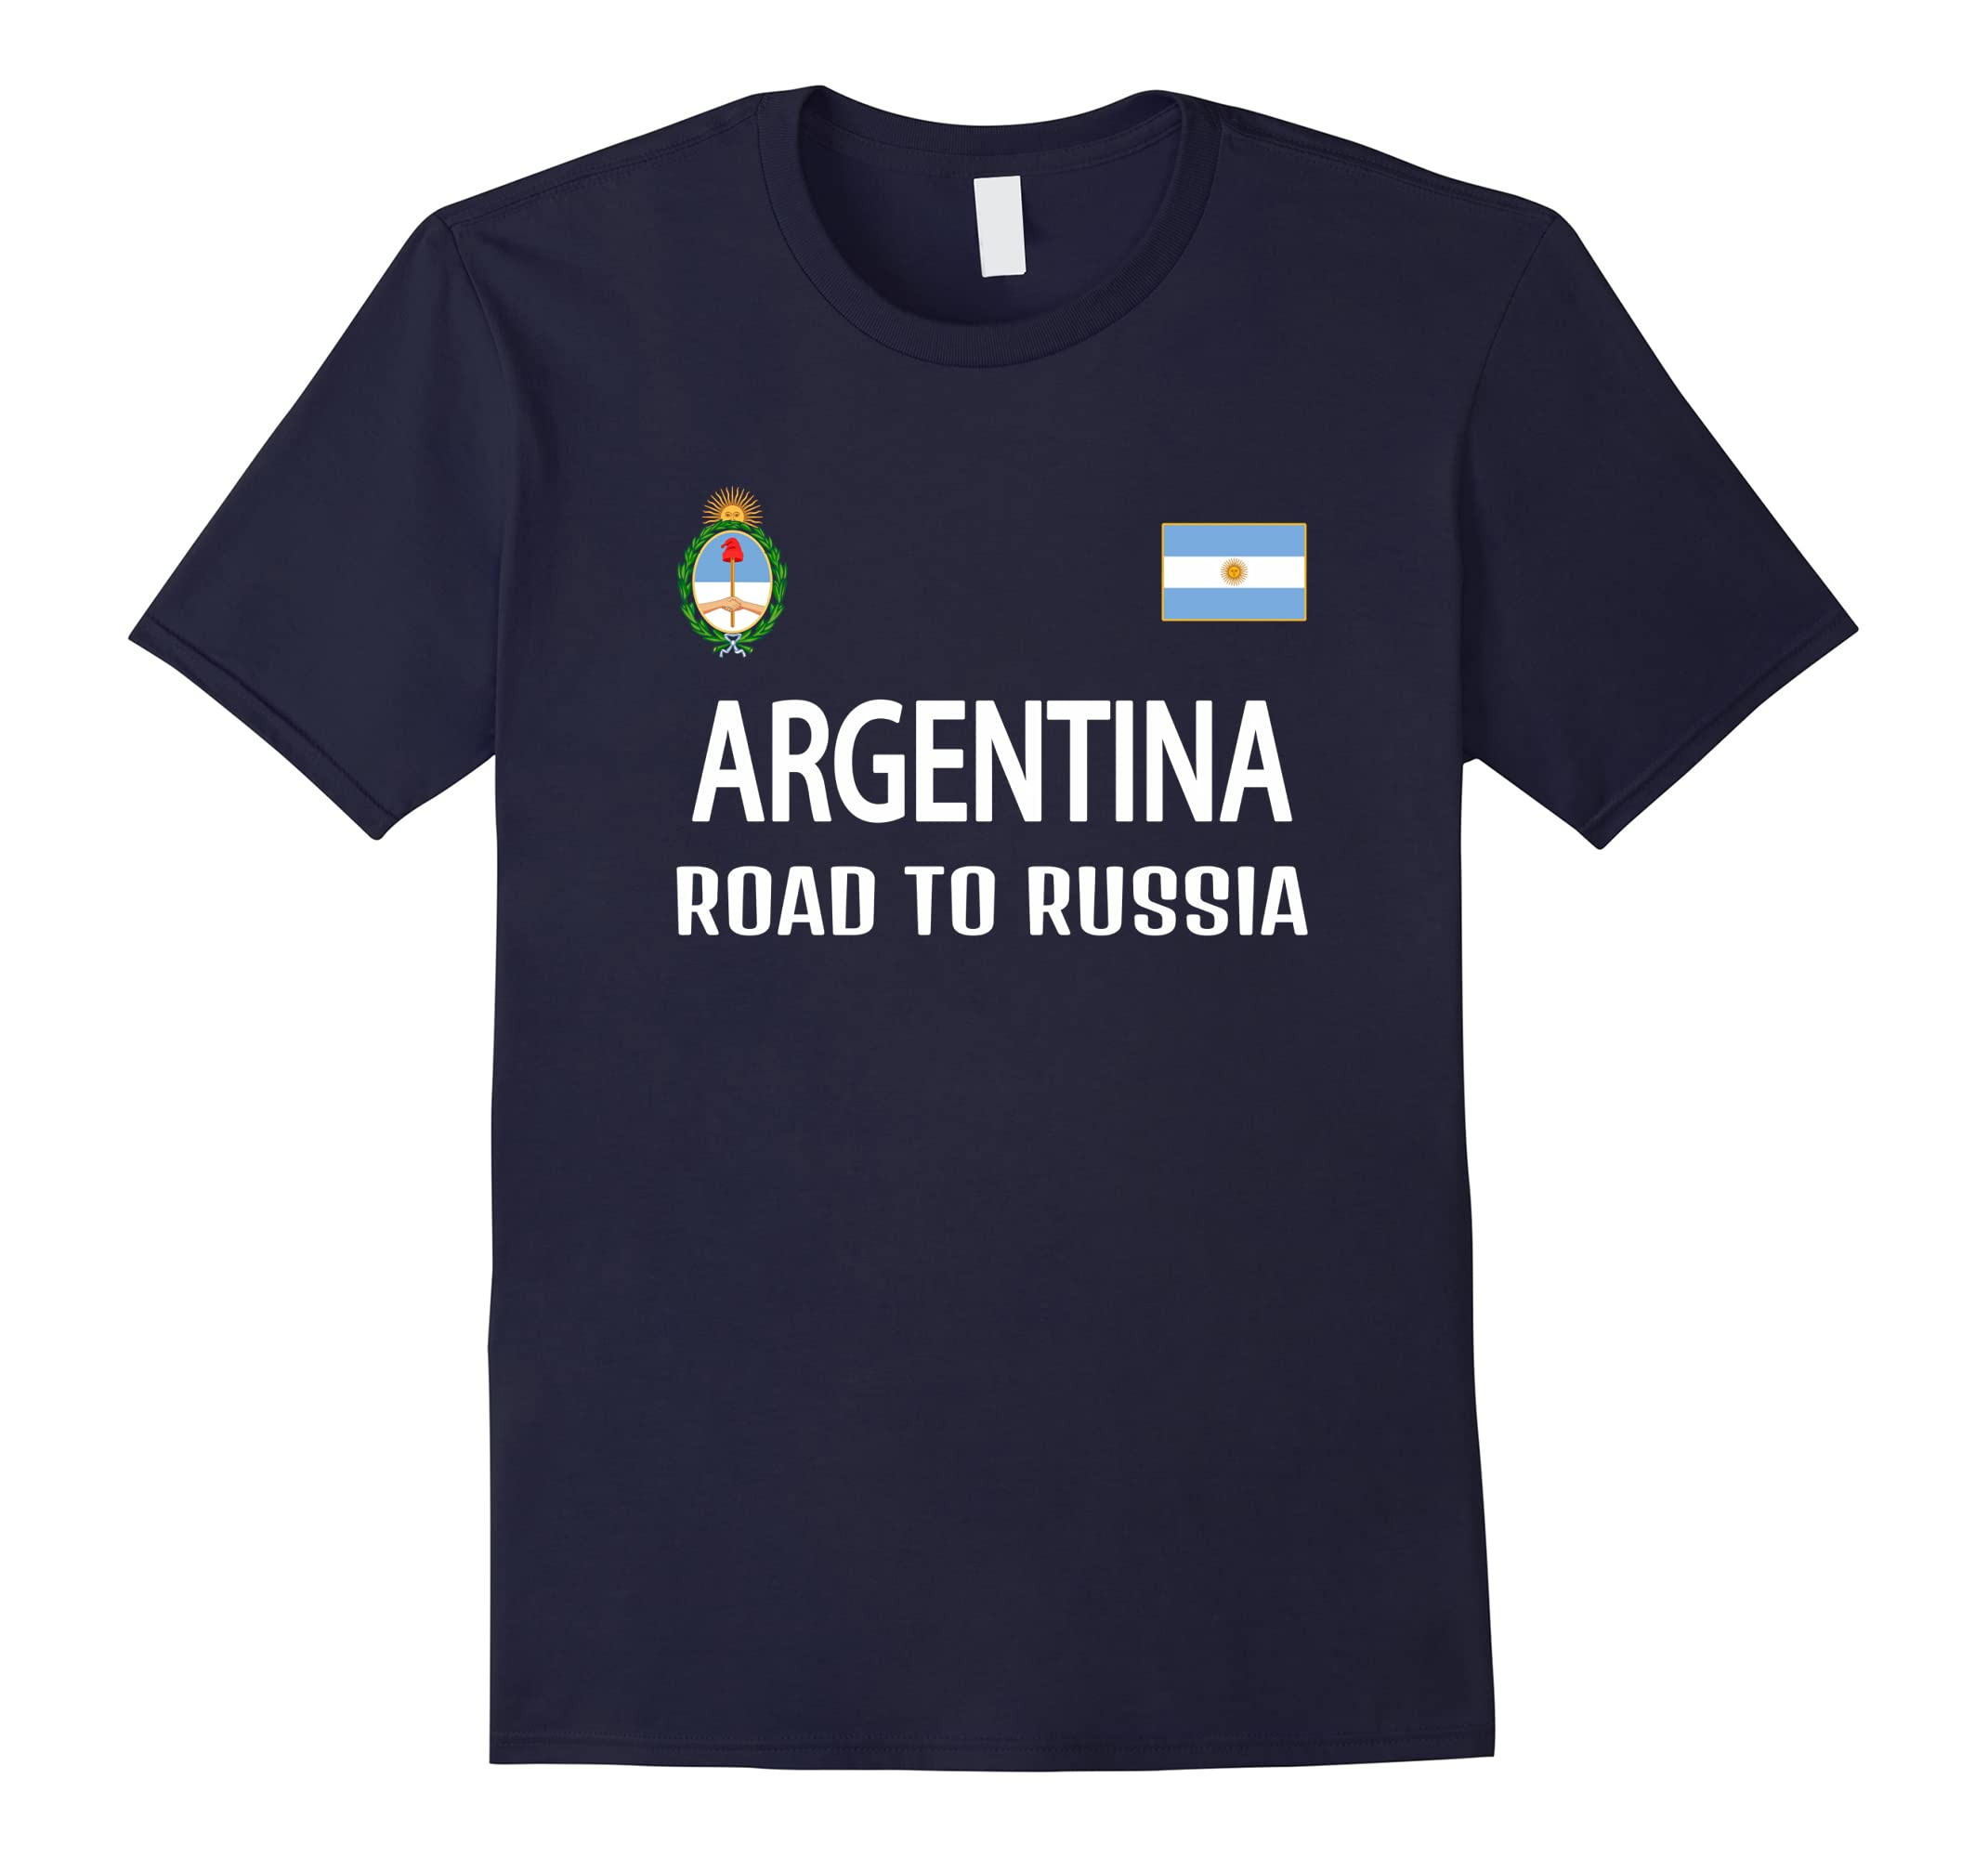 Argentina road to Russia T-shirt Men Women Kids Soccer-RT